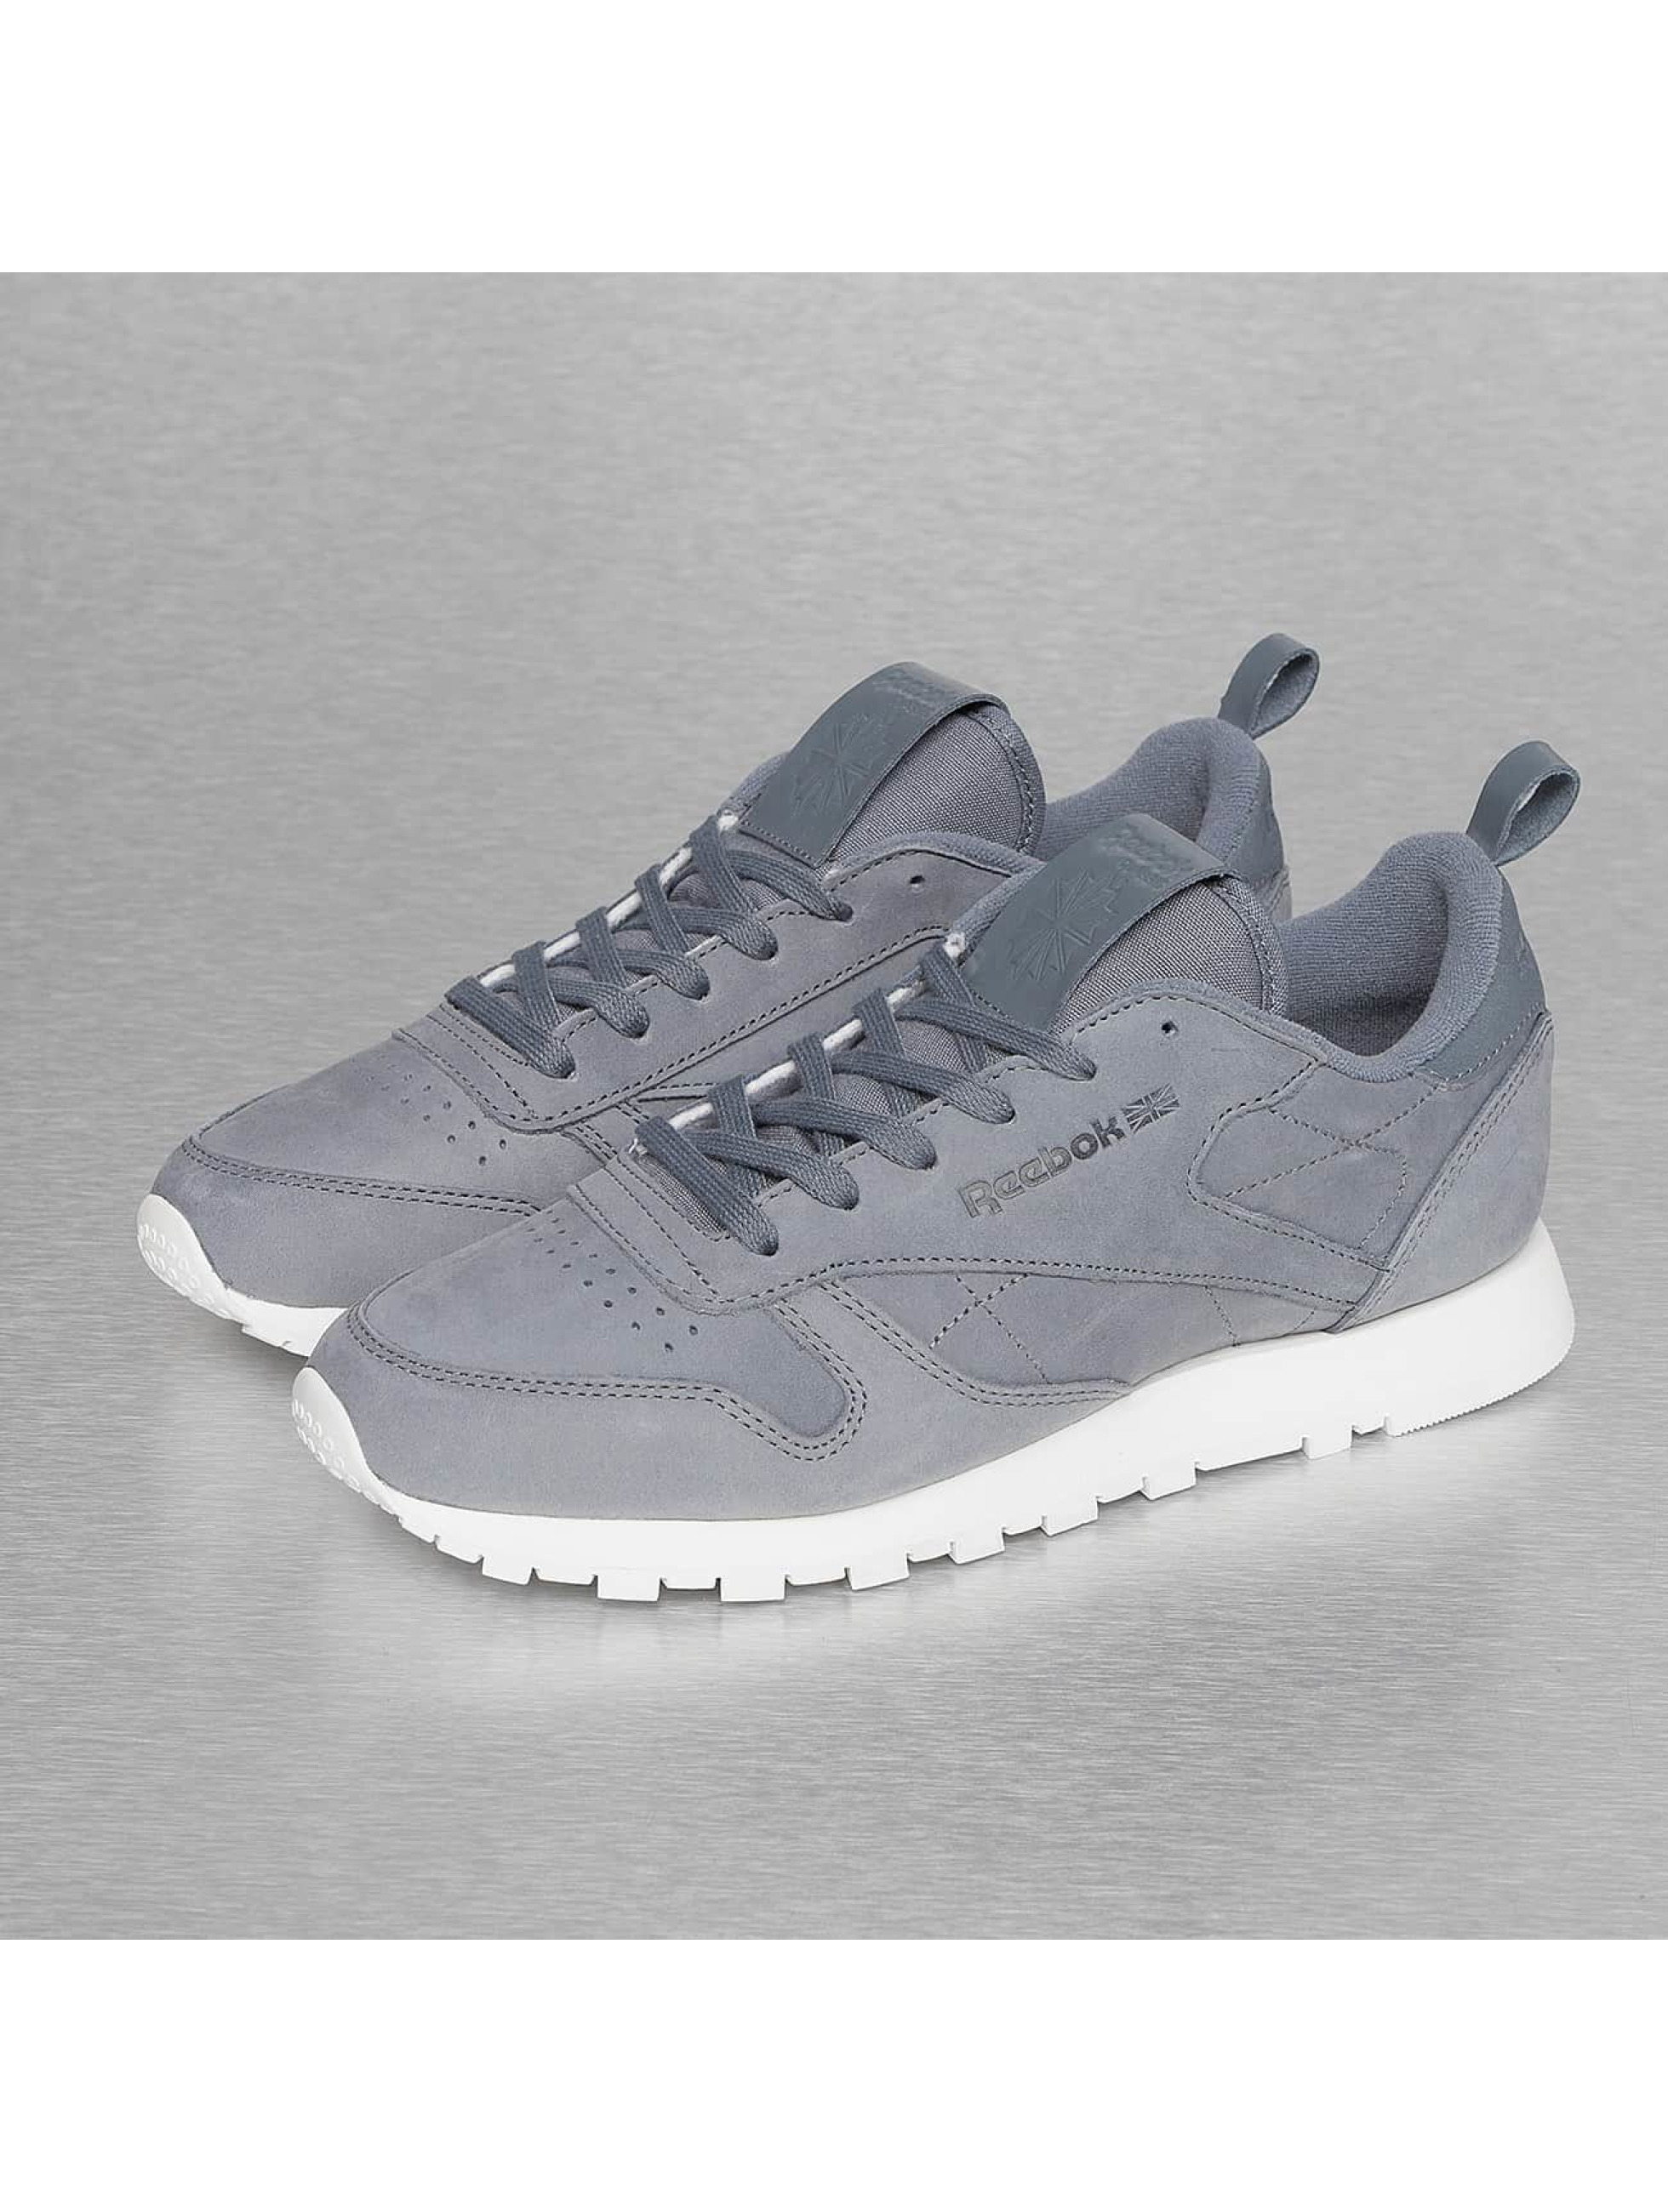 competitive price 801fe c6a8a Reebok Skor   Sneakers Leather MN i grå 303128